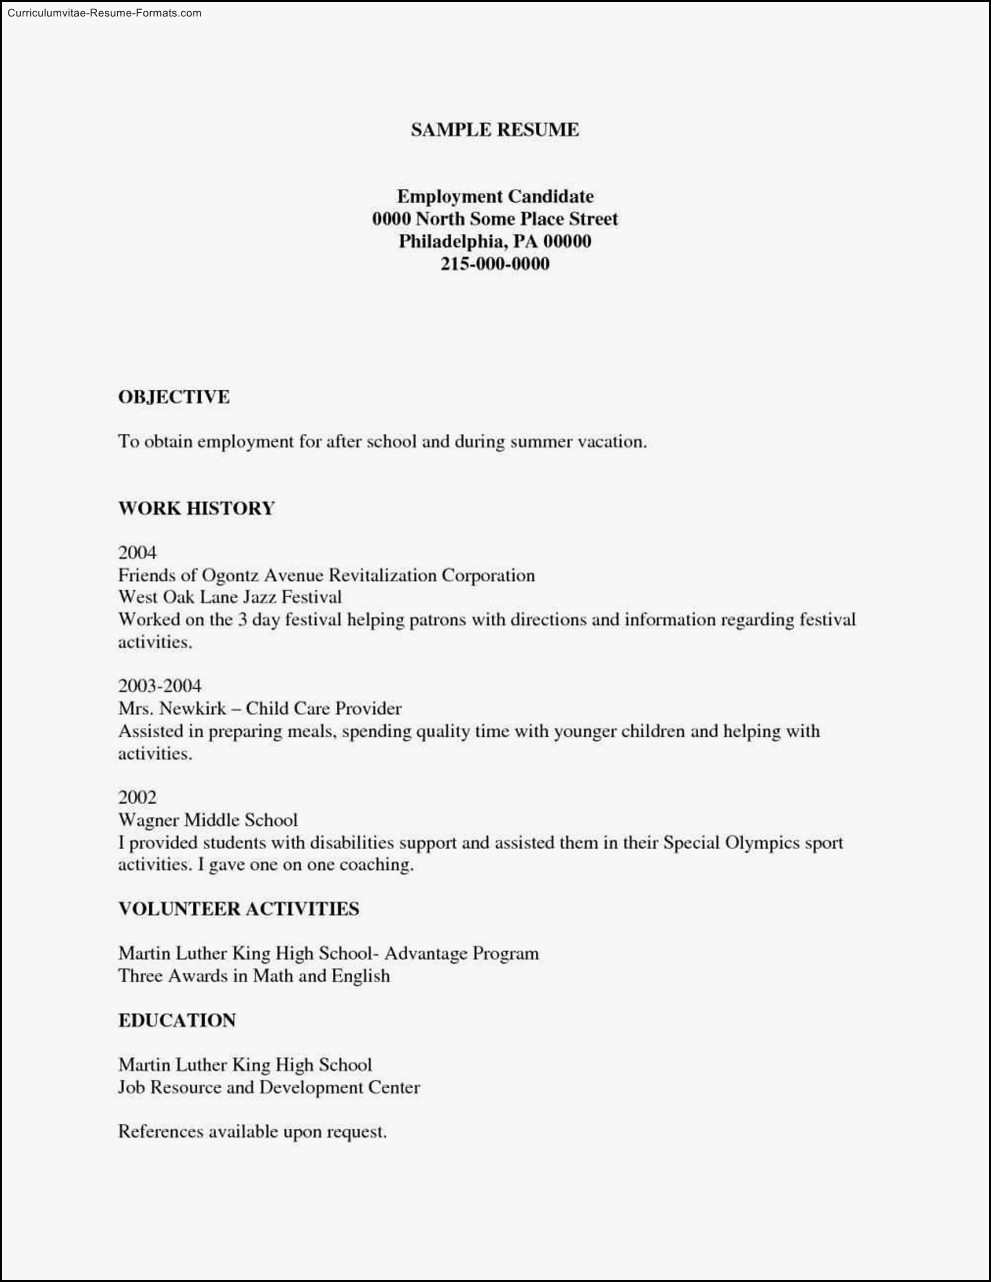 Free Printable Resume Templates | | Business Template And Resources - Free Printable Resume Templates